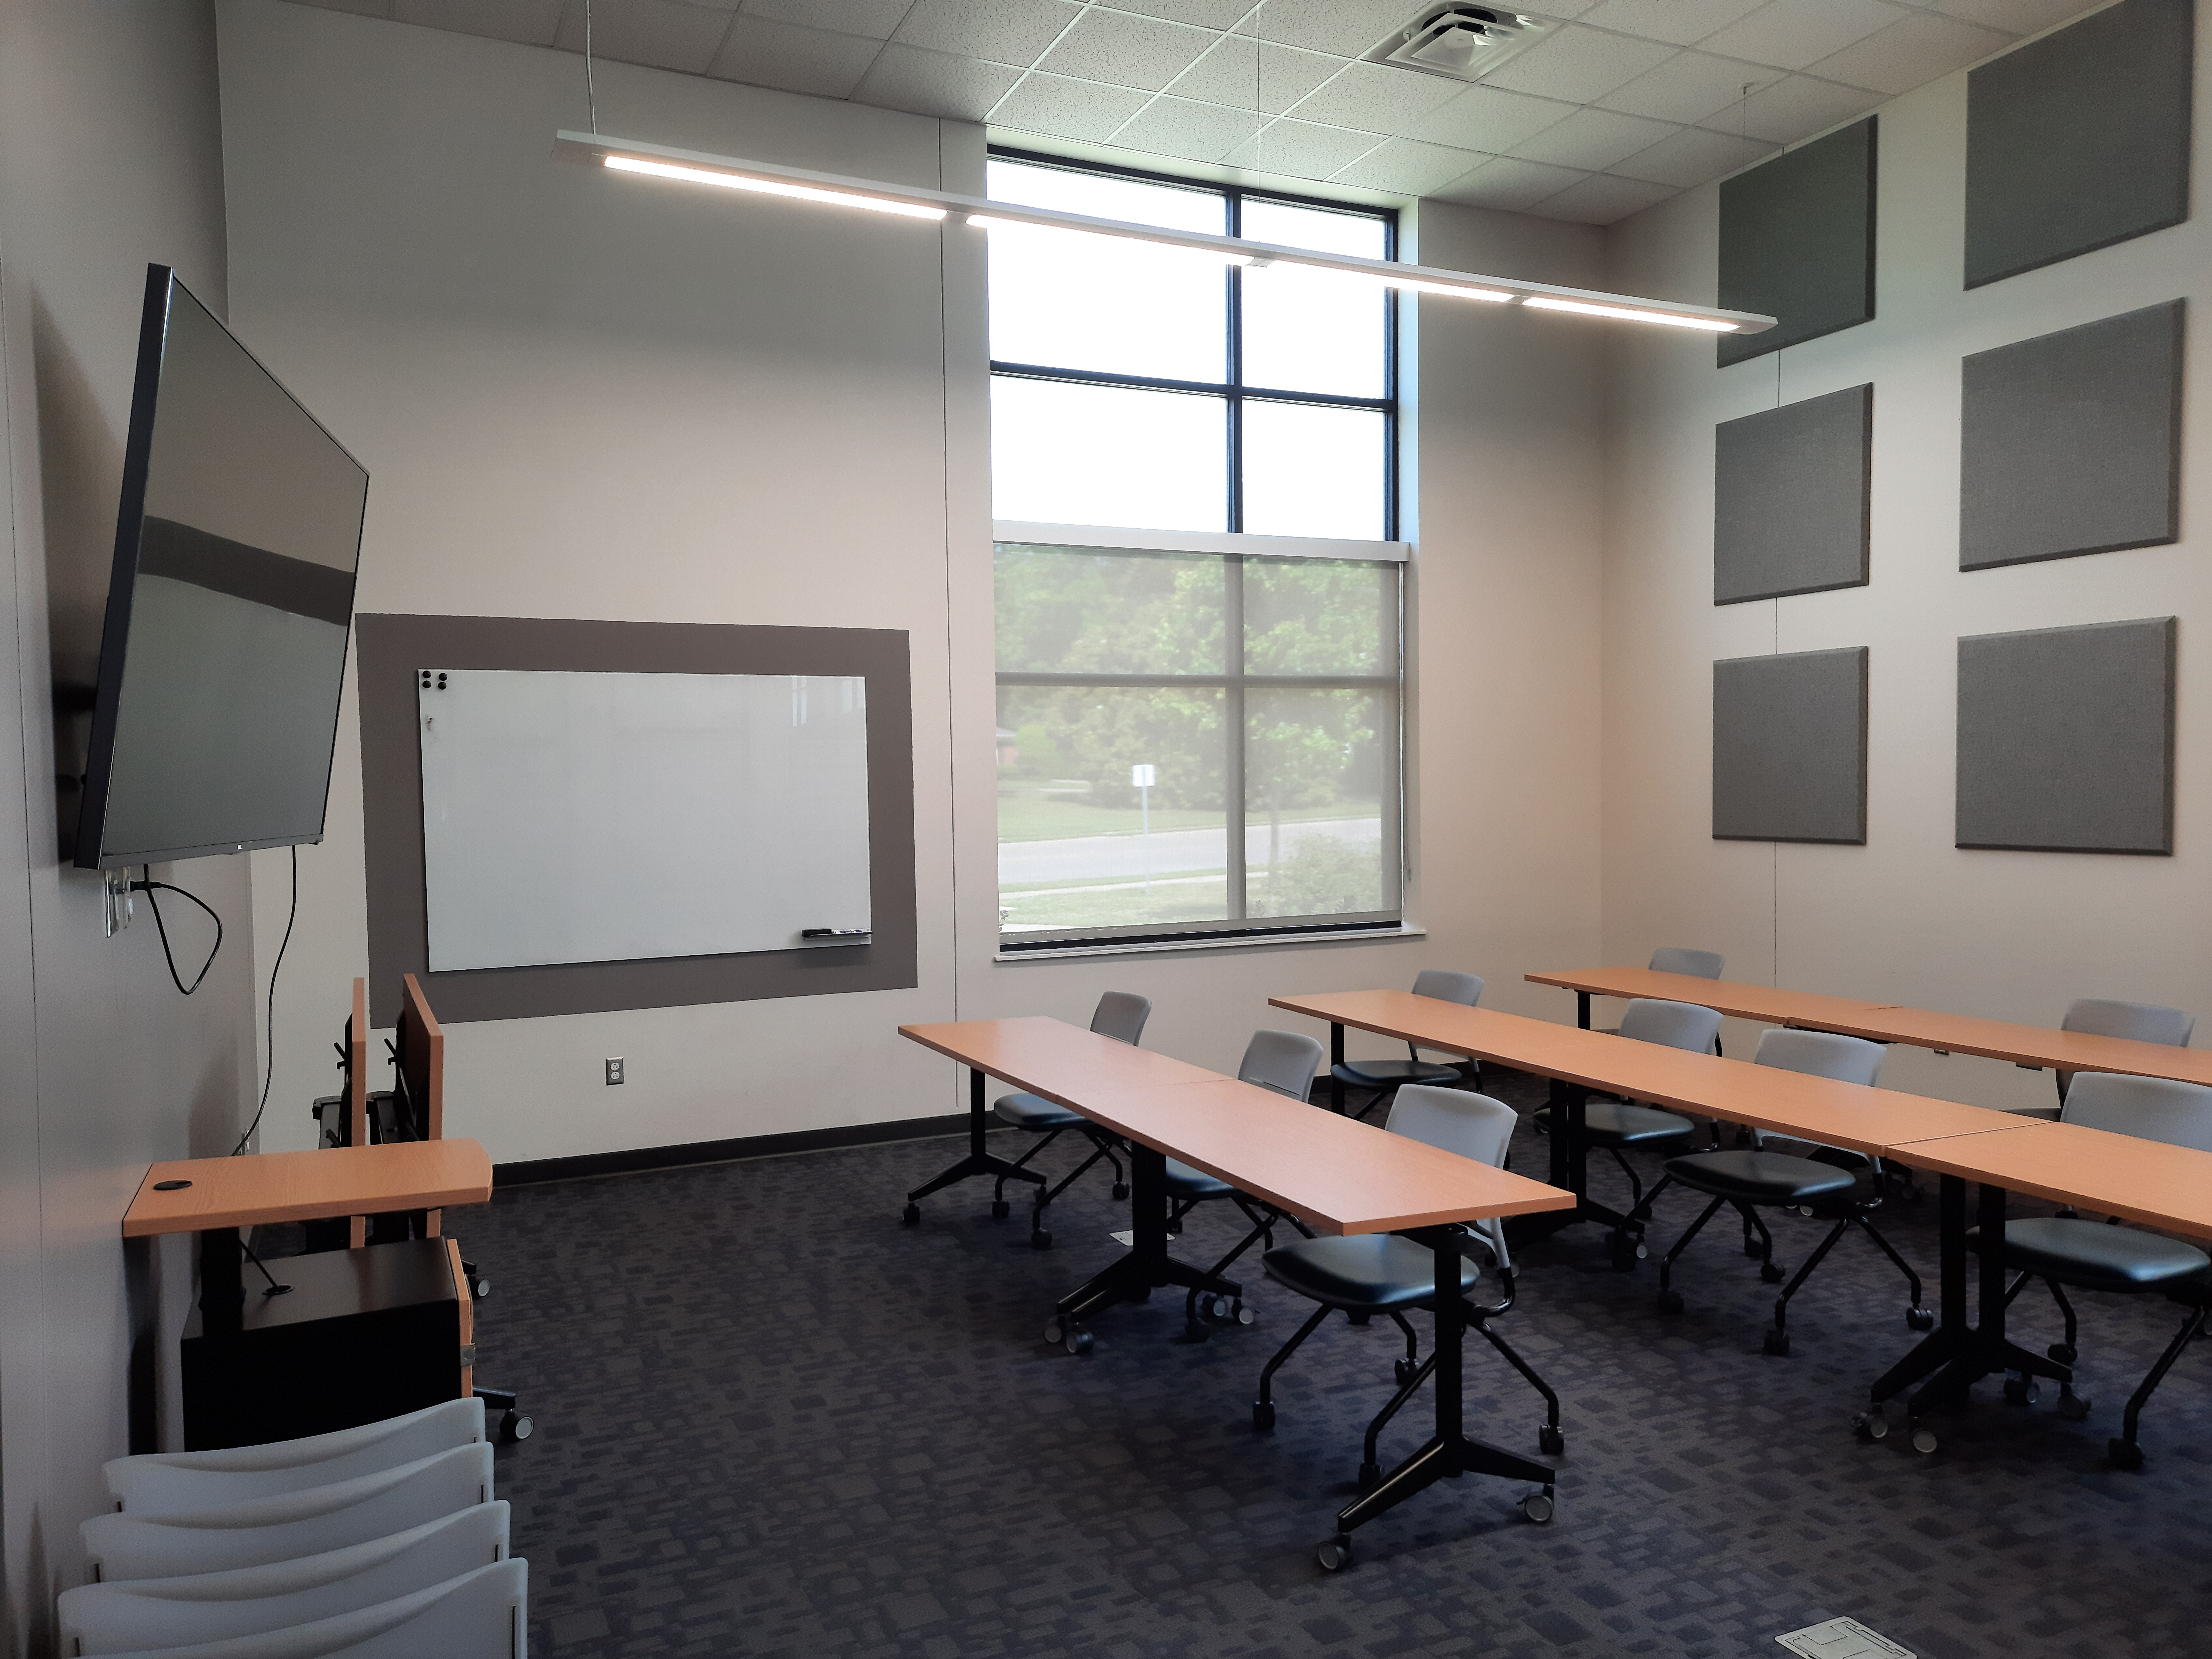 Photo of large meeting room with windows, chairs, and tables. A tv and white board are on the wall.